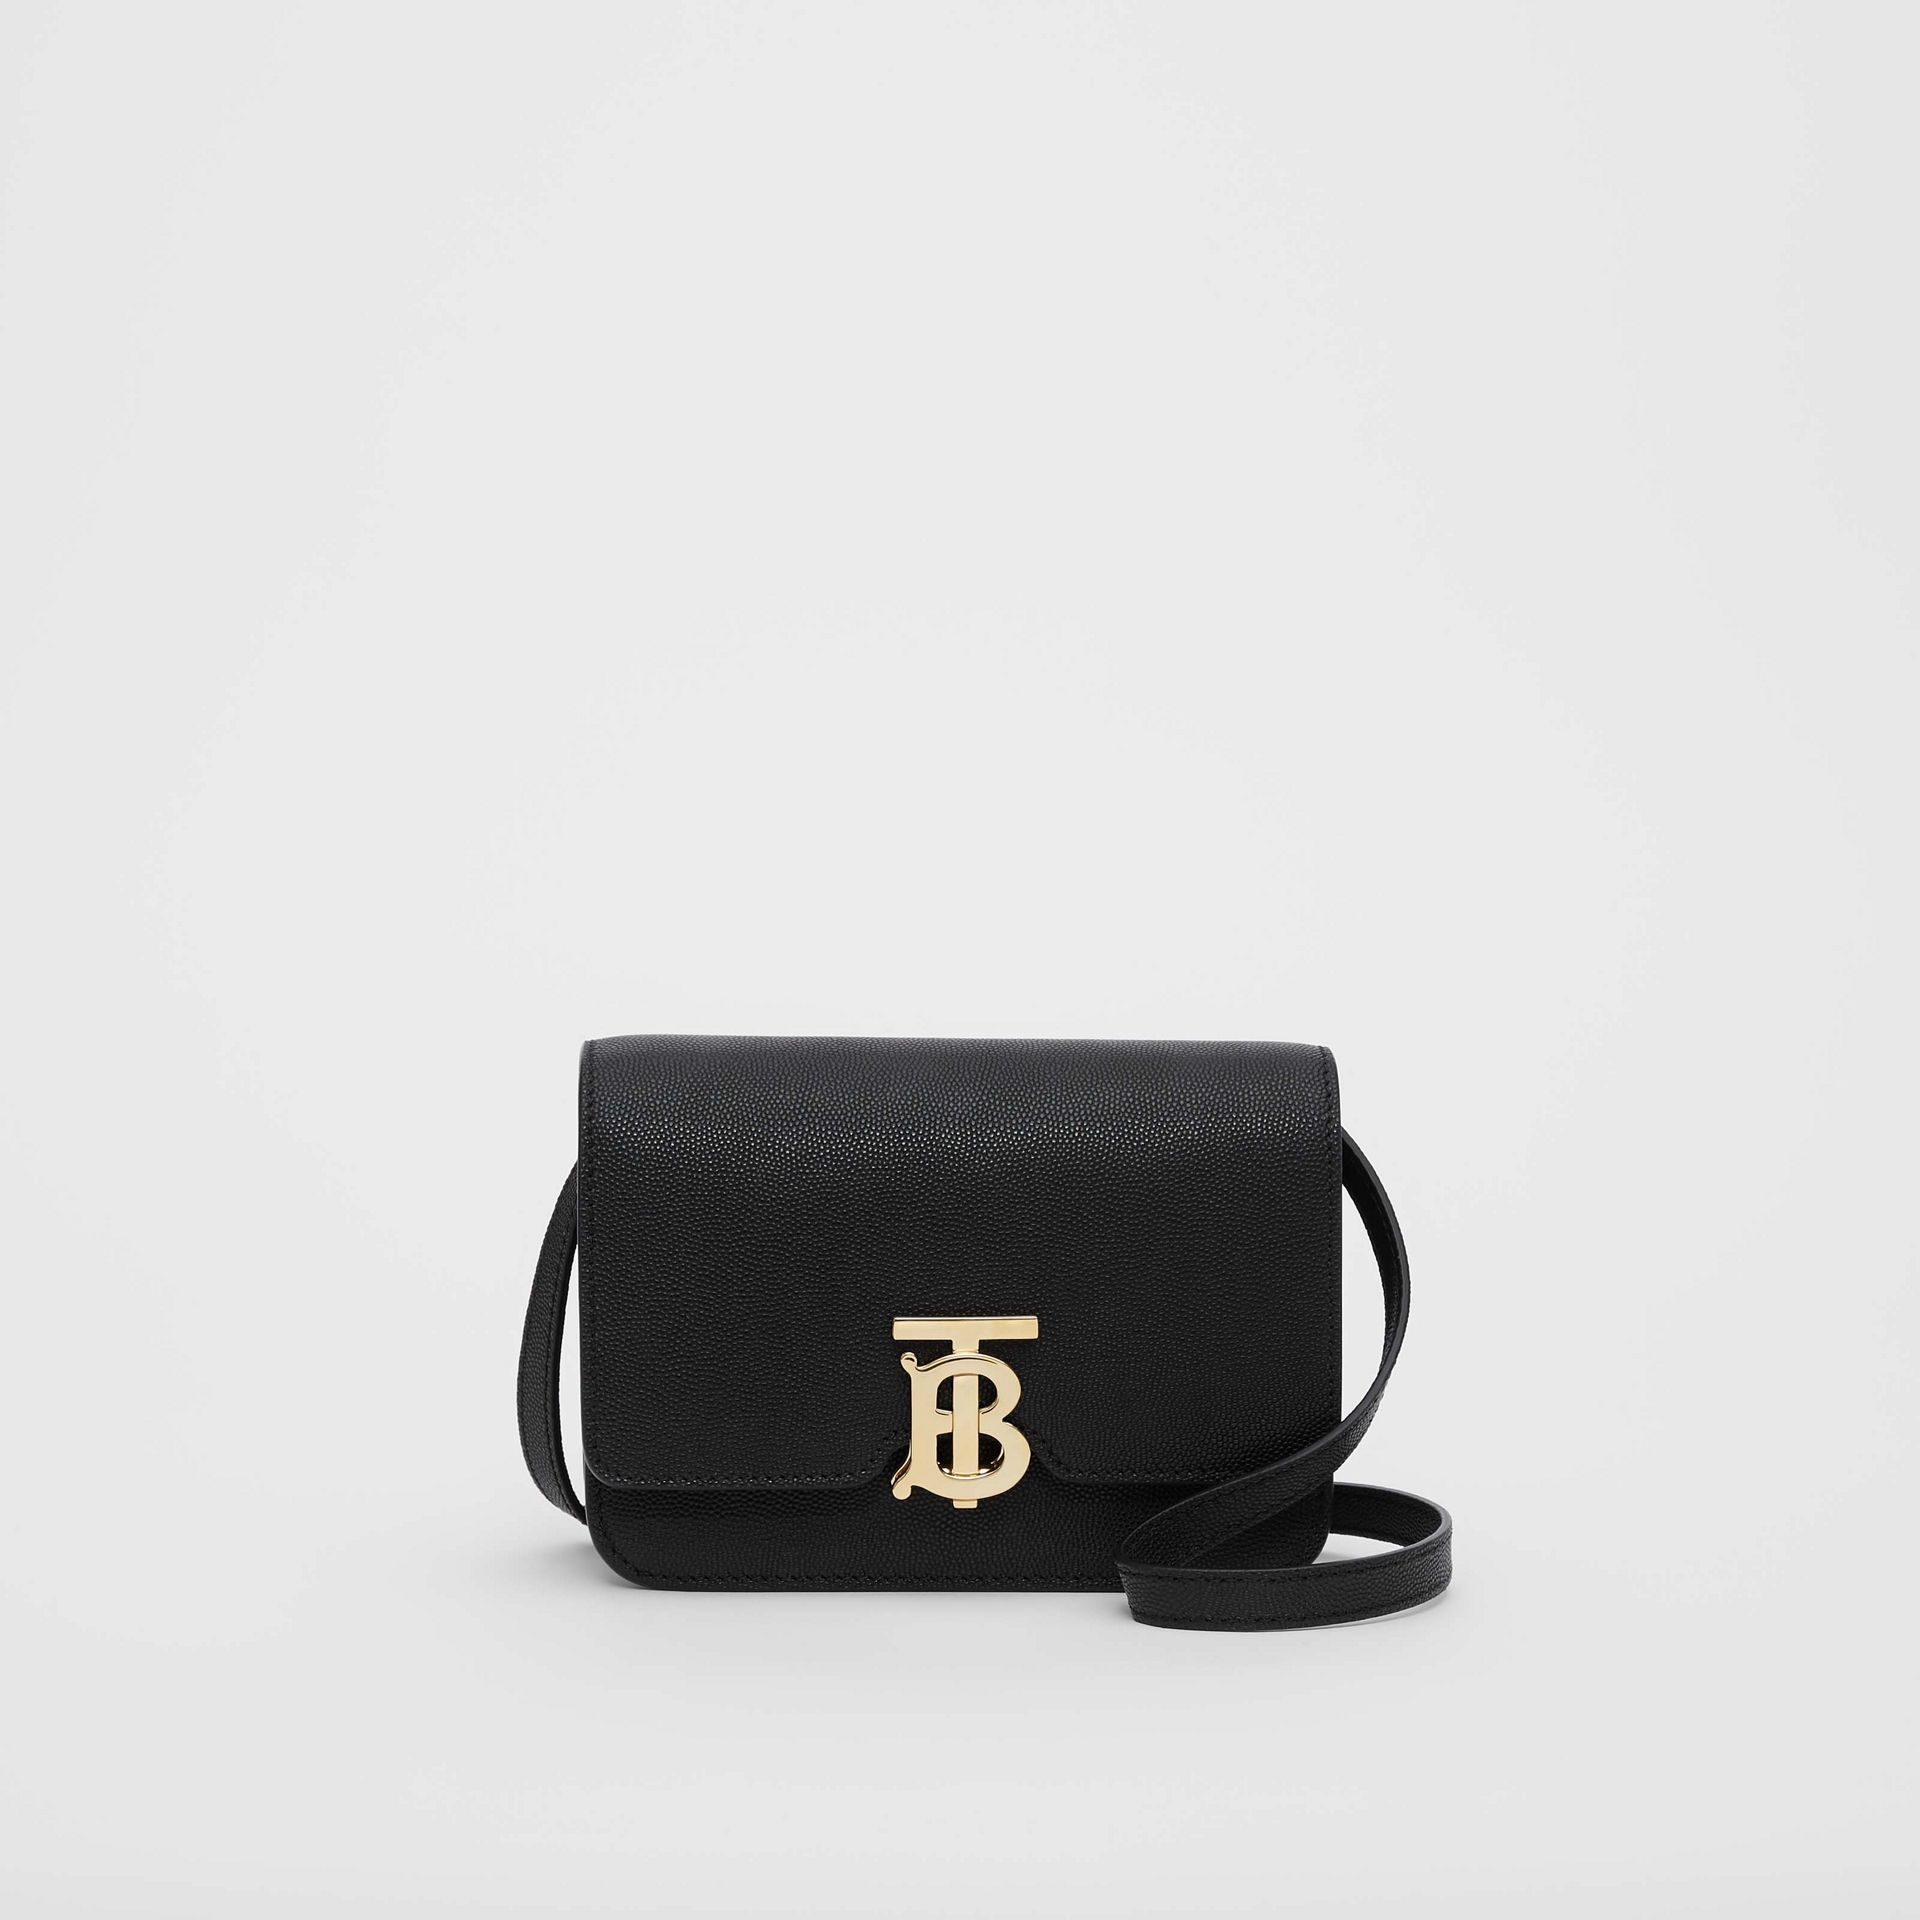 Mini Grainy Leather TB Bag in Black - Women | Burberry Singapore - gallery image 0